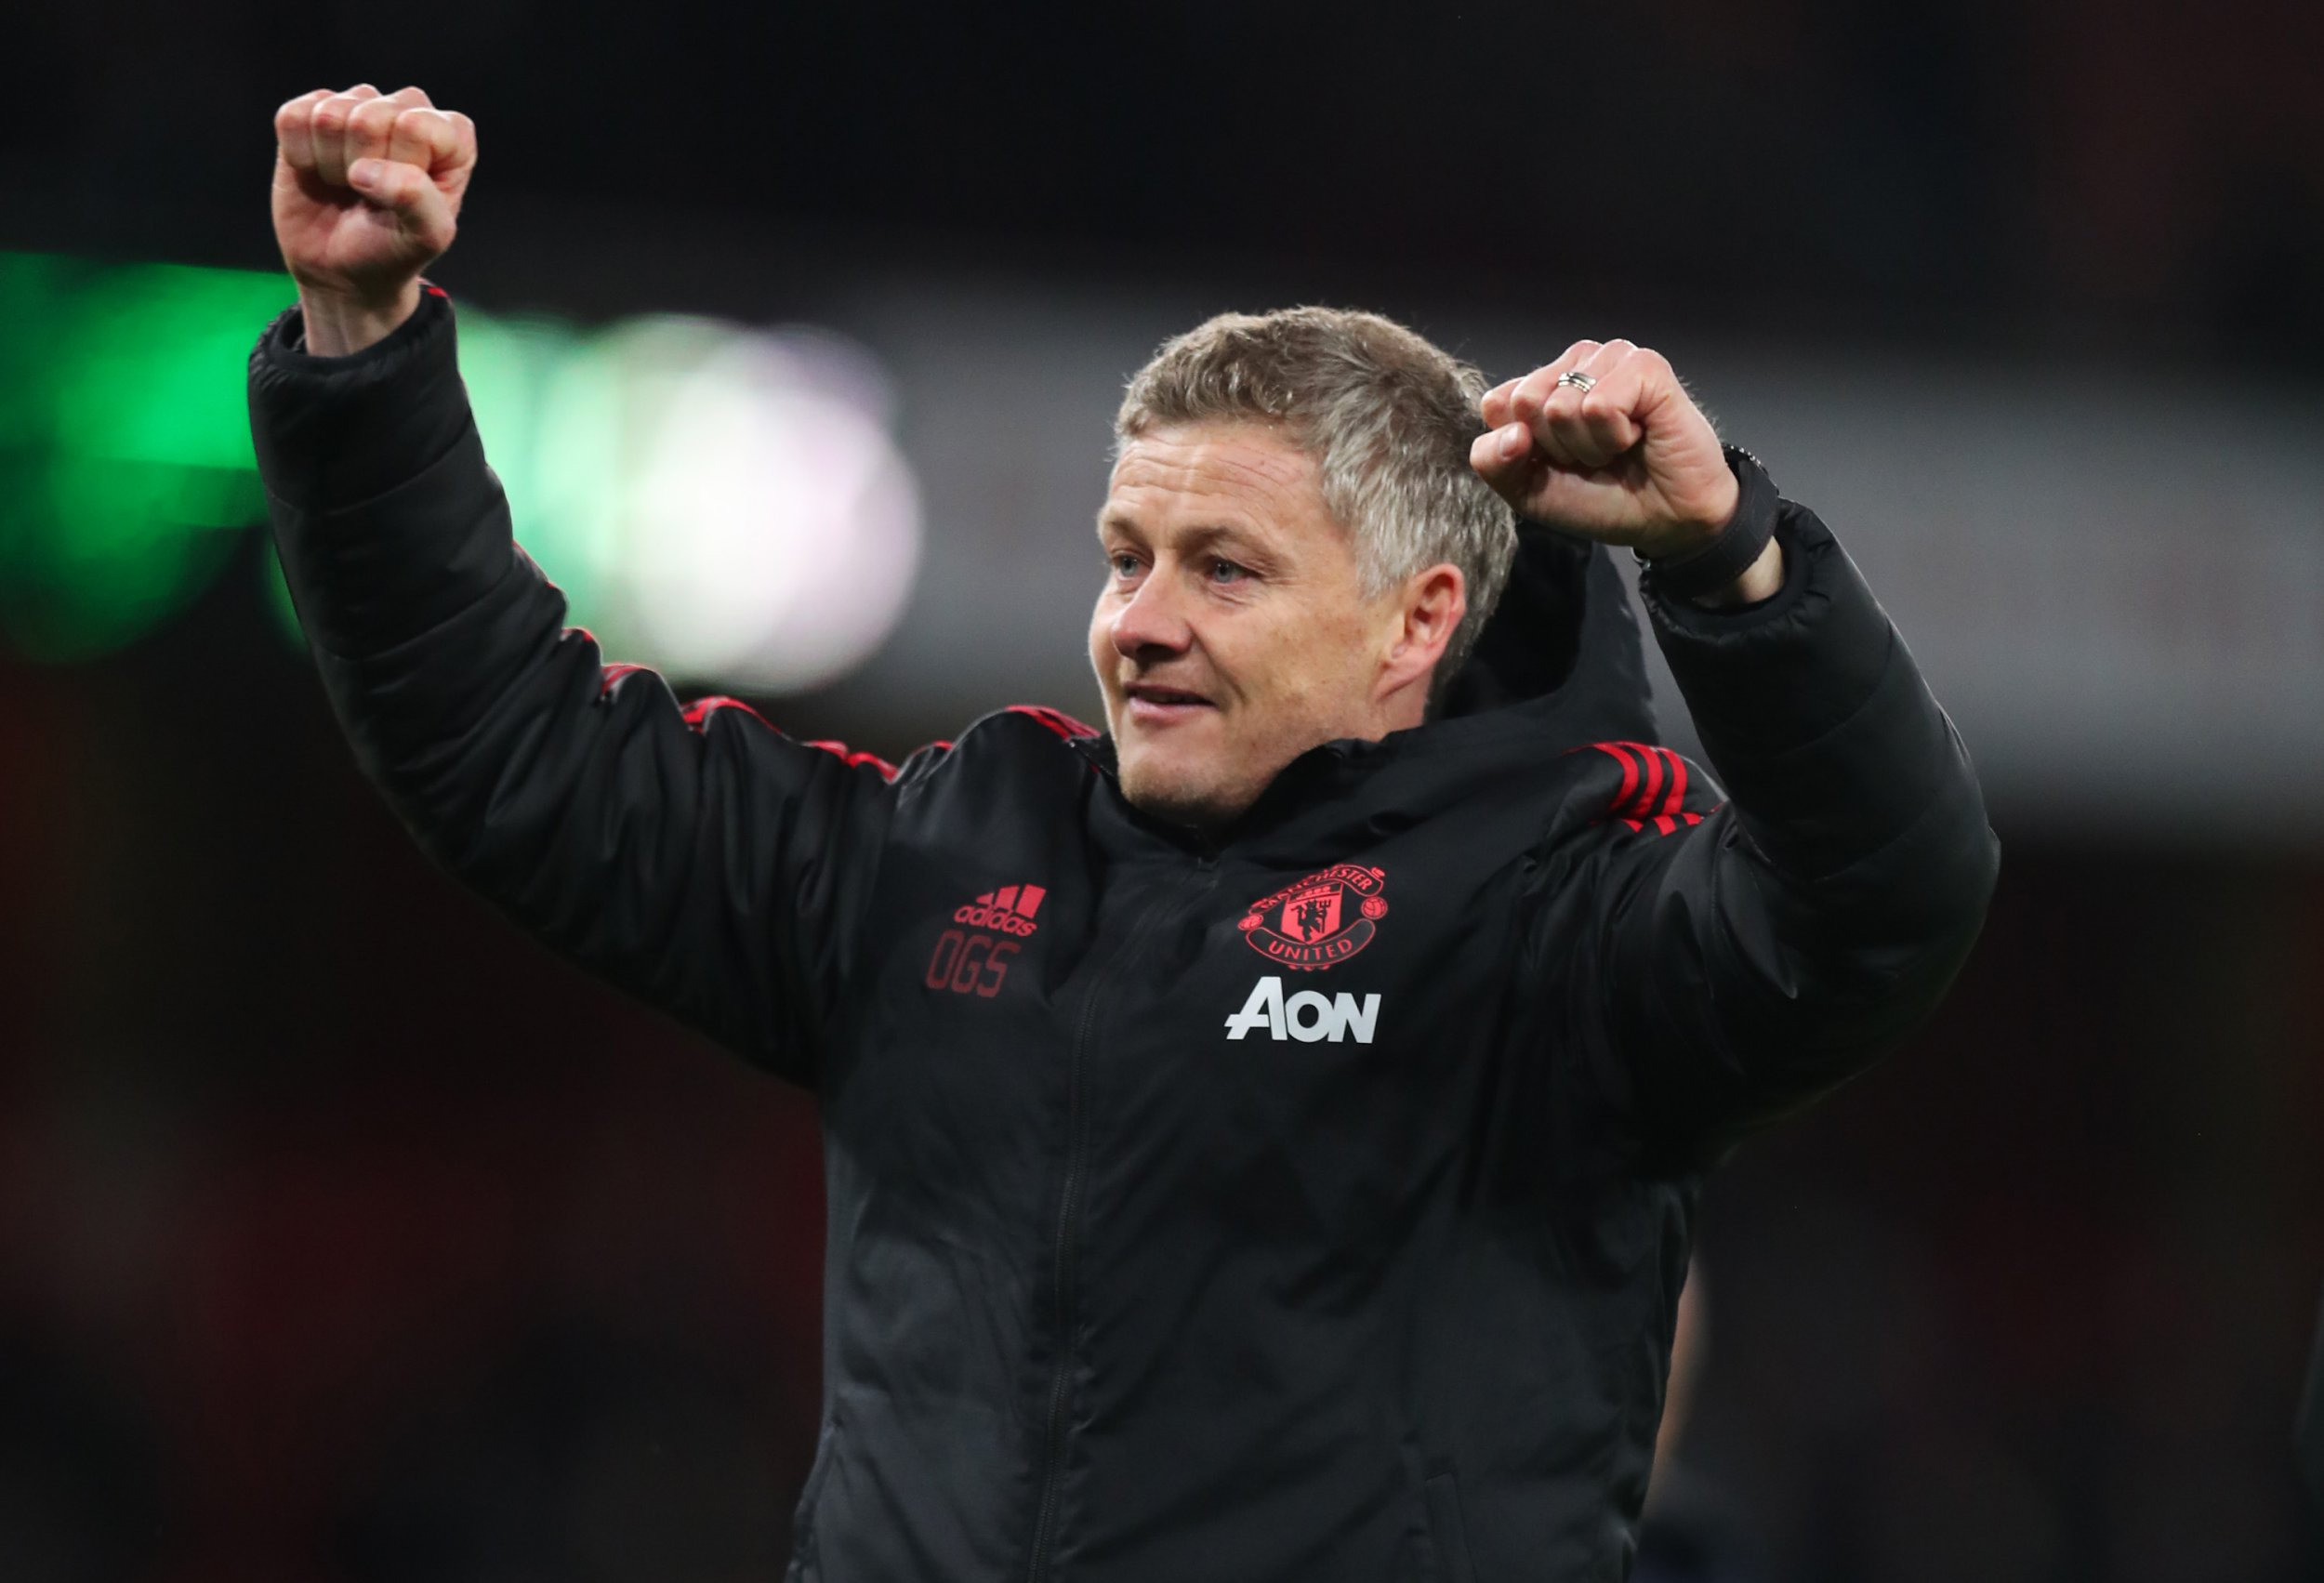 LONDON, ENGLAND - JANUARY 25: Ole Gunnar Solskjaer, Interim Manager of Manchester United celebrates victory after the FA Cup Fourth Round match between Arsenal and Manchester United at Emirates Stadium on January 25, 2019 in London, United Kingdom. (Photo by Catherine Ivill/Getty Images)